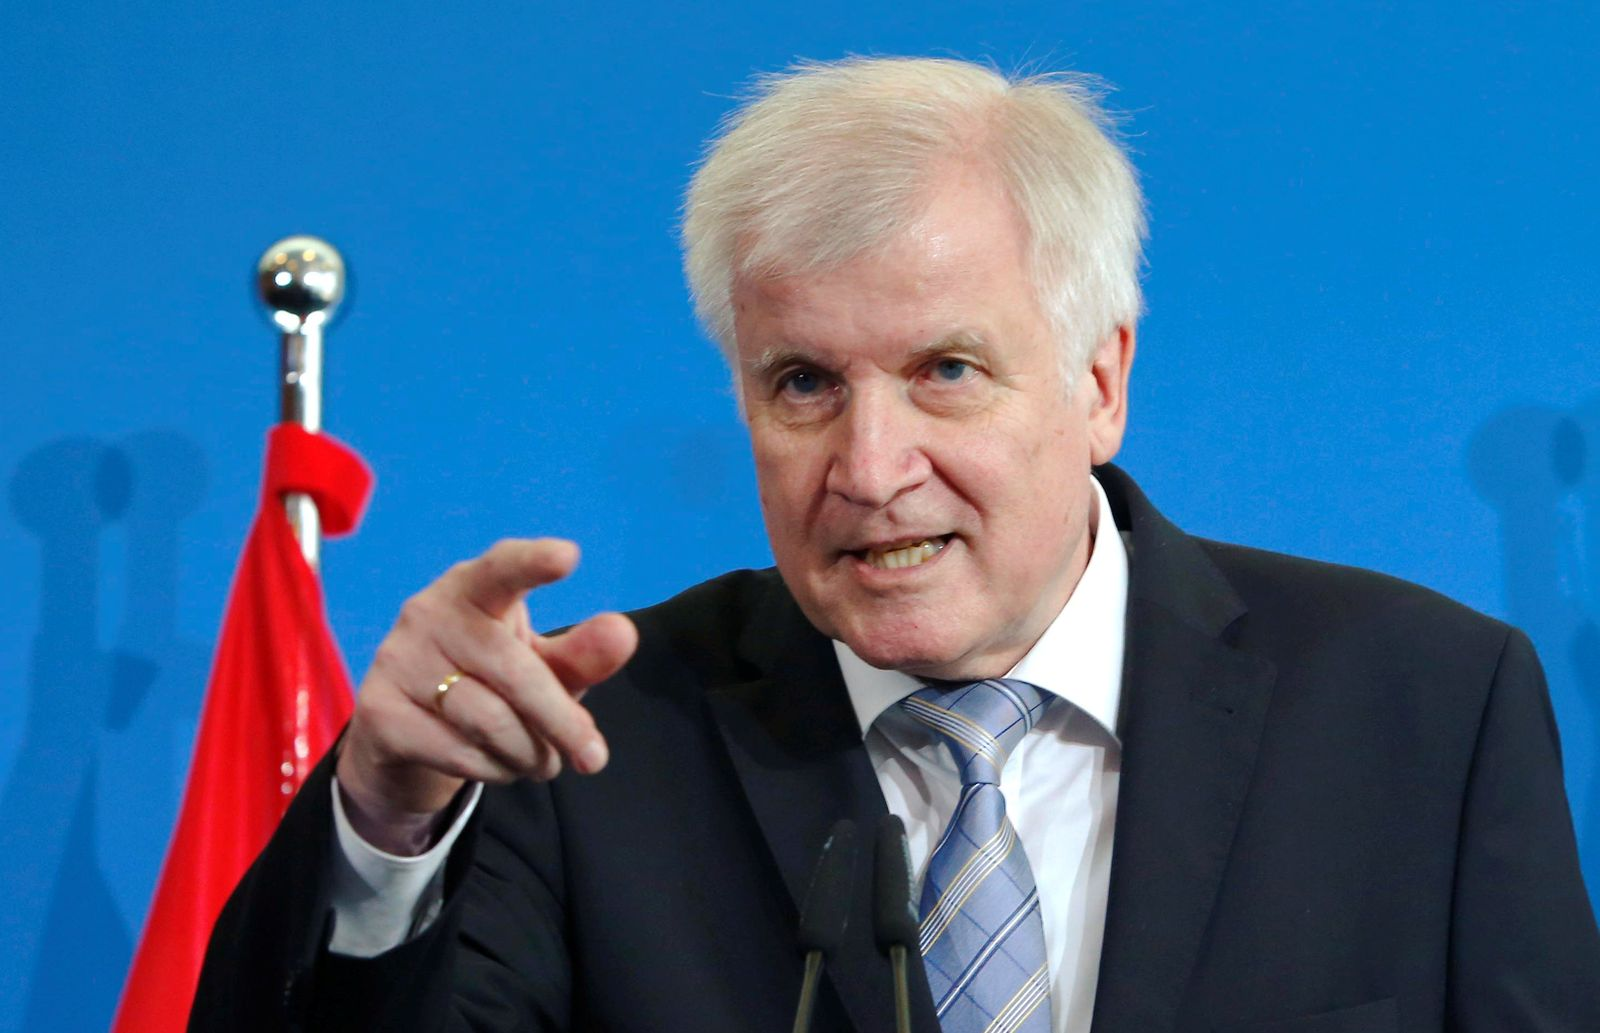 German Interior Minister Seehofer attends a news conference in Berlin